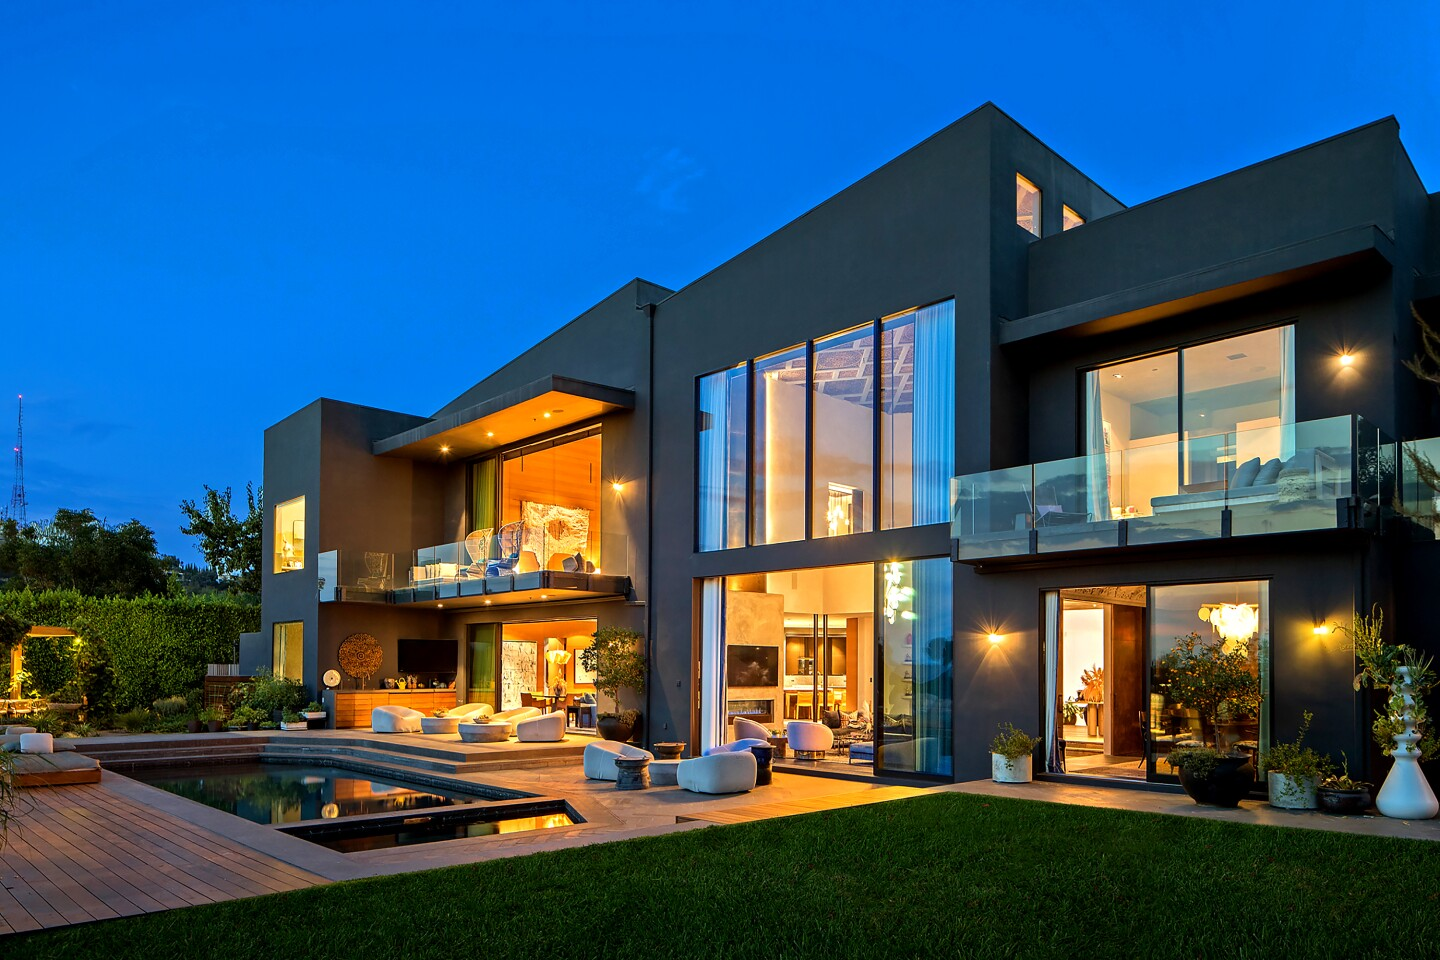 John Legend and Chrissy Teigen, who are expecting their third child, are asking $23.95 million for their contemporary home in the Beverly Hills Post Office area. Once owned by Rihanna, the multilevel house has been updated with cerused oak floors, hot-rolled steel walls and bespoke patterned ceilings from Thailand. Features of Legend and Teigen's home include a movie theater, a gym and a chef's kitchen. Three balconies overlook a saltwater swimming pool.